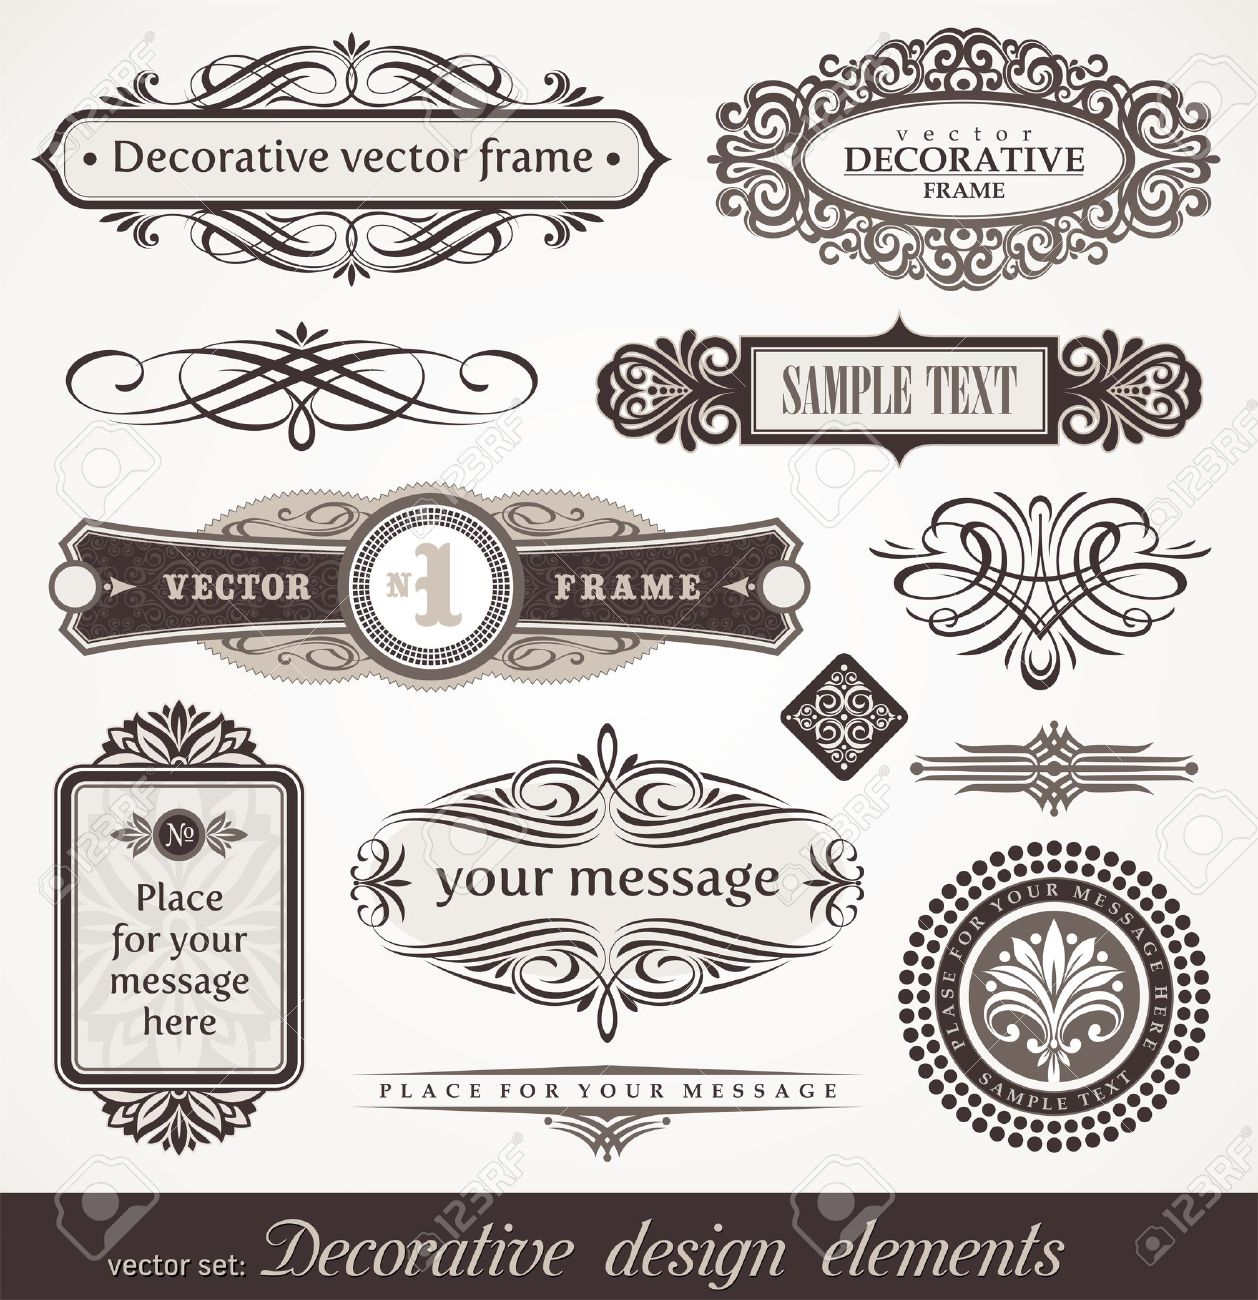 accents: Decorative vector design elements & page decor